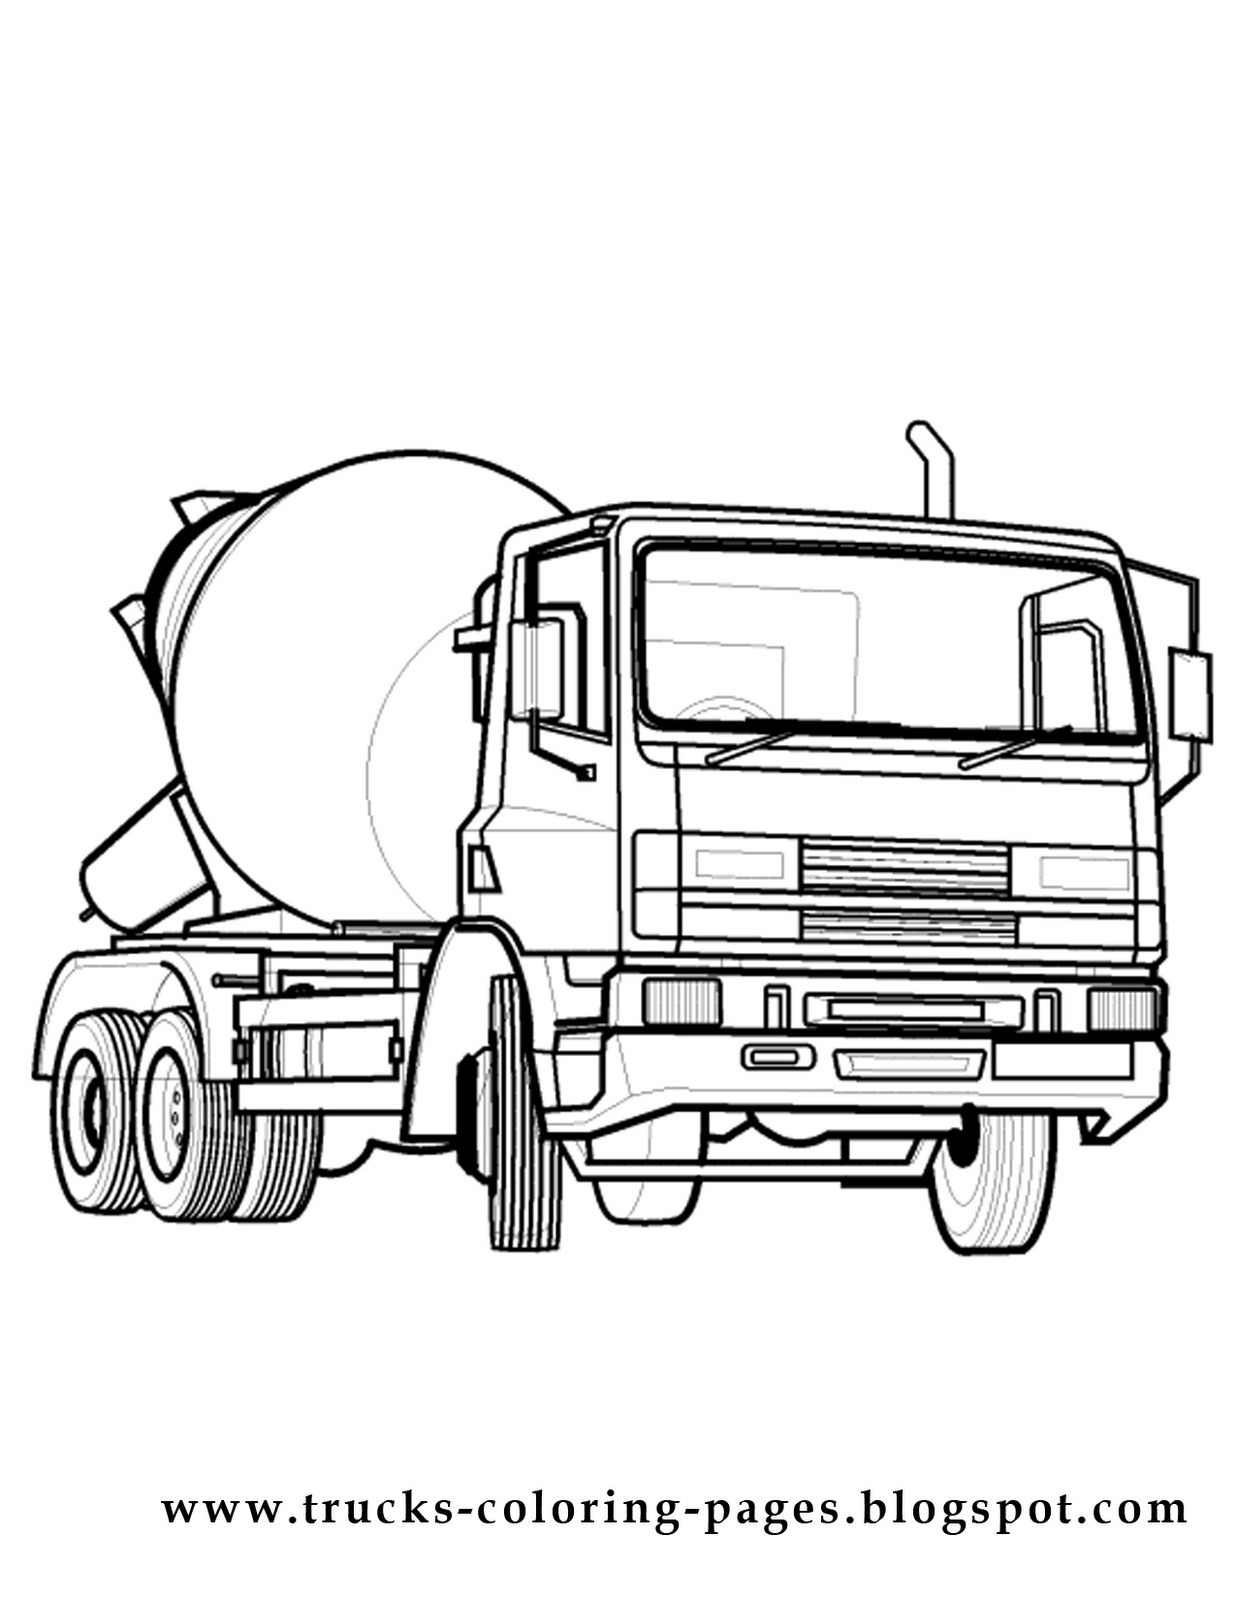 lifted ford truck coloring pages 2012 ford f350 dually lifted coloring page truck lifted pages ford truck coloring